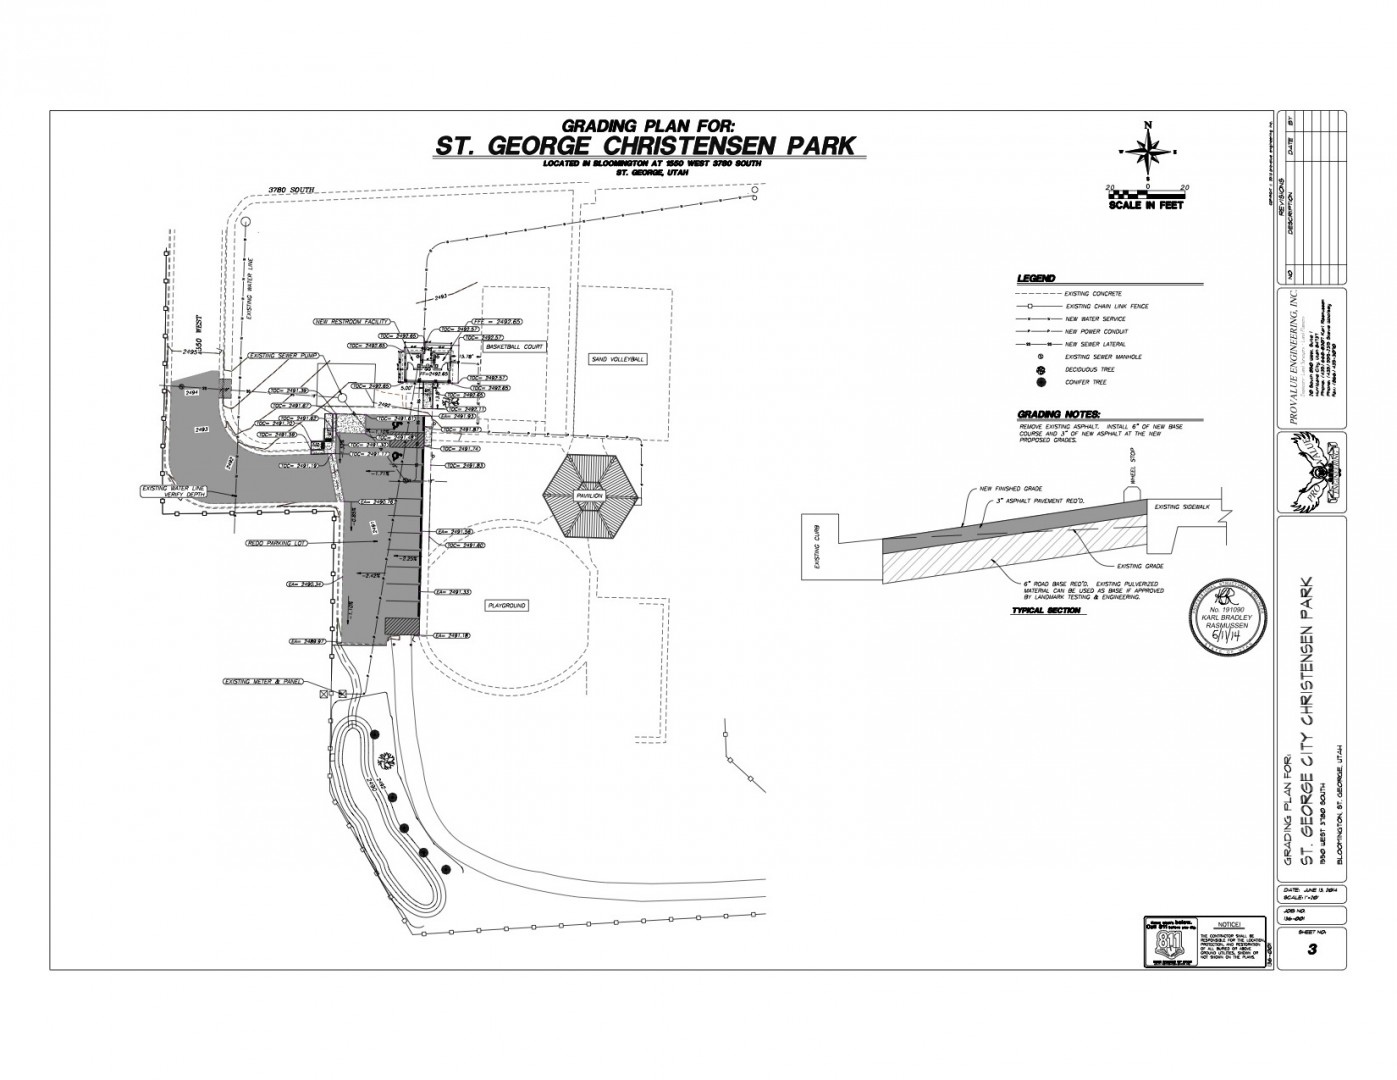 Blueprint of Bloomington Park renovations, Bloomington, Utah, October 2014 | Image courtesy of the City of St. George, St. George News